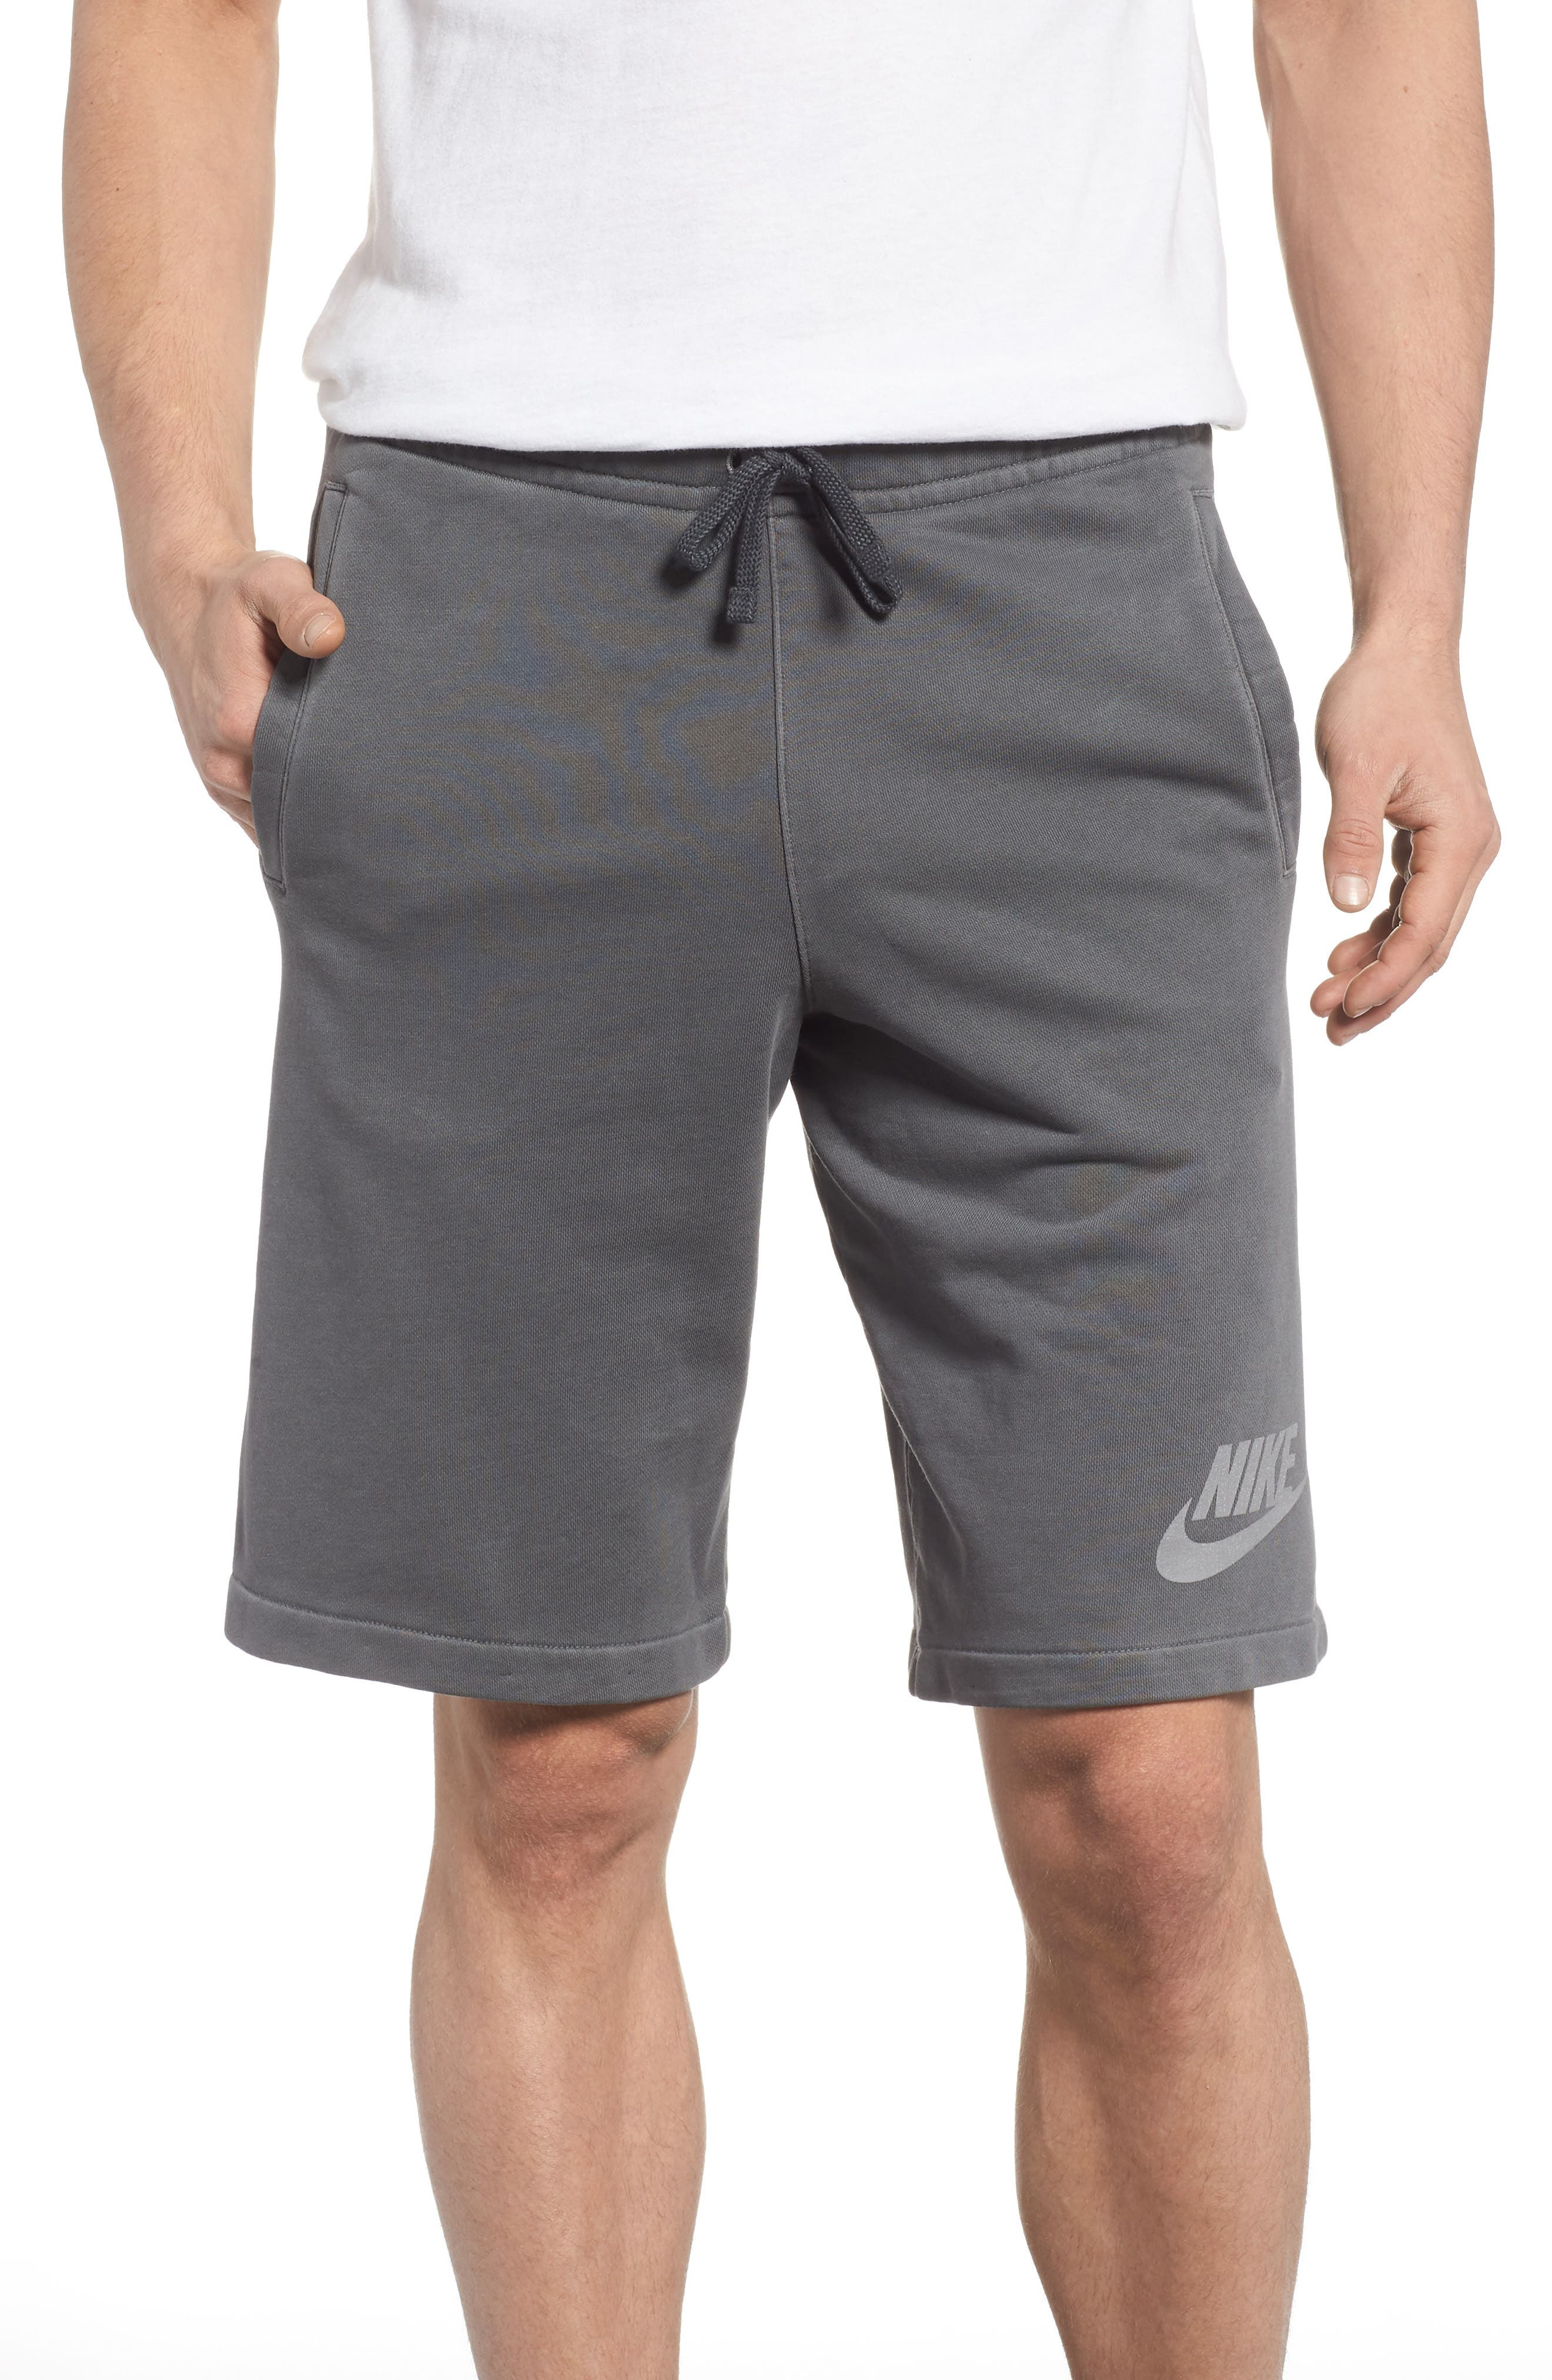 NSW Cotton Blend Shorts,                             Main thumbnail 1, color,                             Black/ Anthracite/ Cool Grey